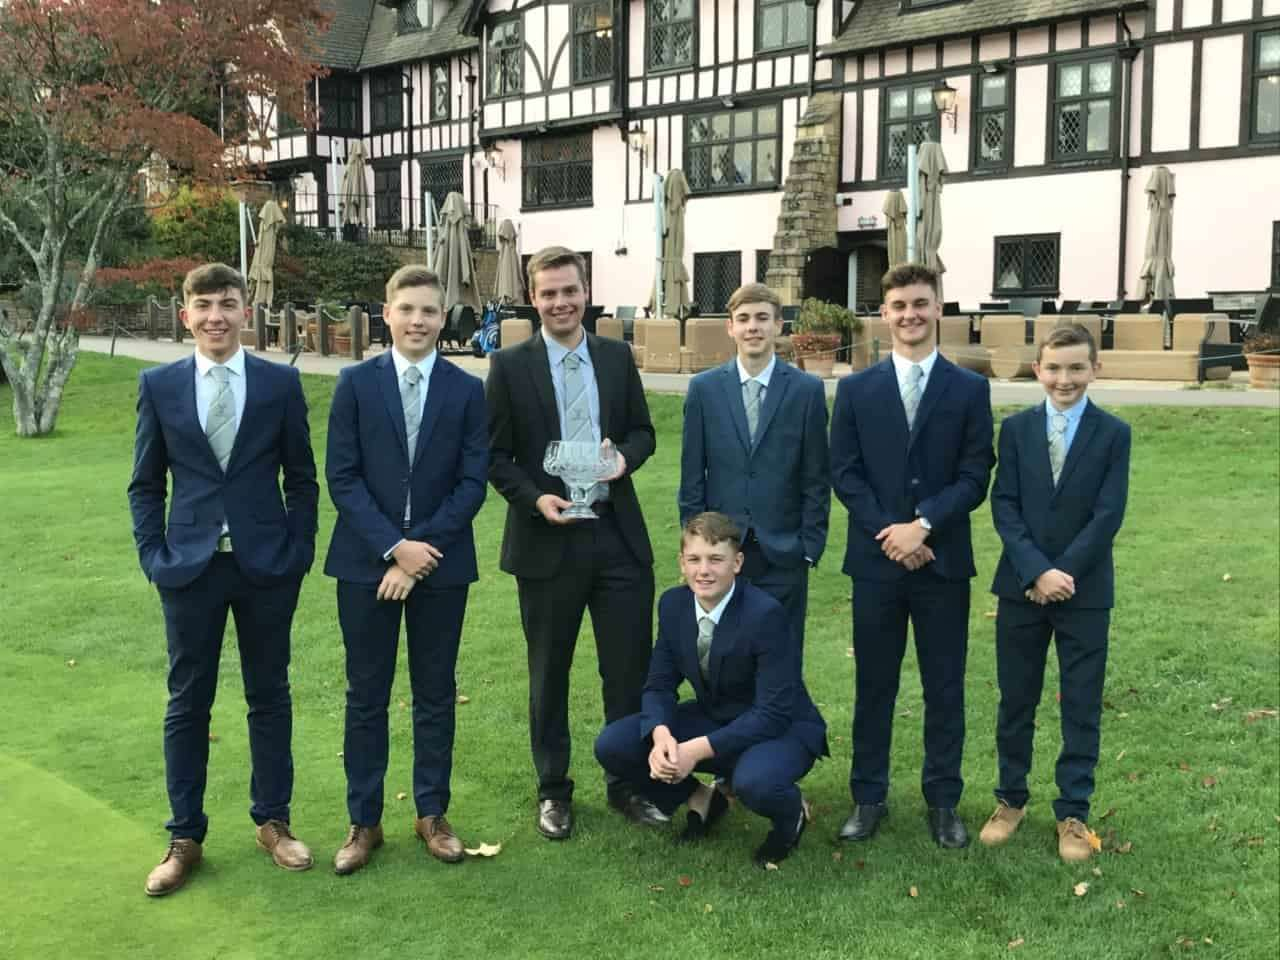 The winning Bramshaw Golf Club junior golf team: (Back row l-r) team captain Joe Buenfeld, Elliot Thomas, 2019 junior captain Ciaran Simpkin, Ryan Archer, Danny Coombs, Jake Barney and (front) Billy Lightfoot